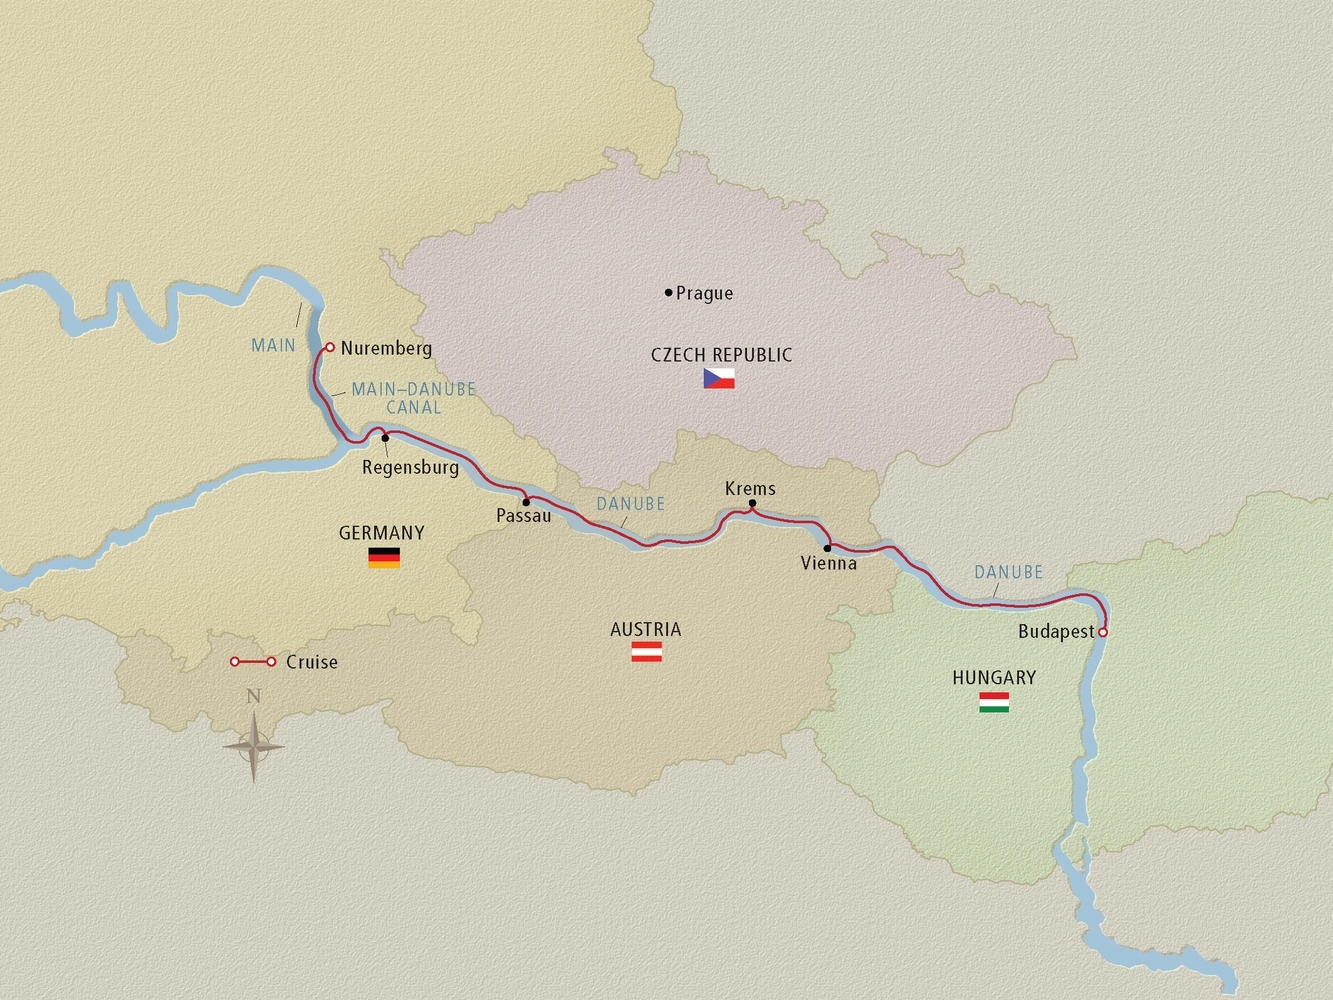 Danube River Cruise Map - Cruise Critic with Map Of Danube River In Germany